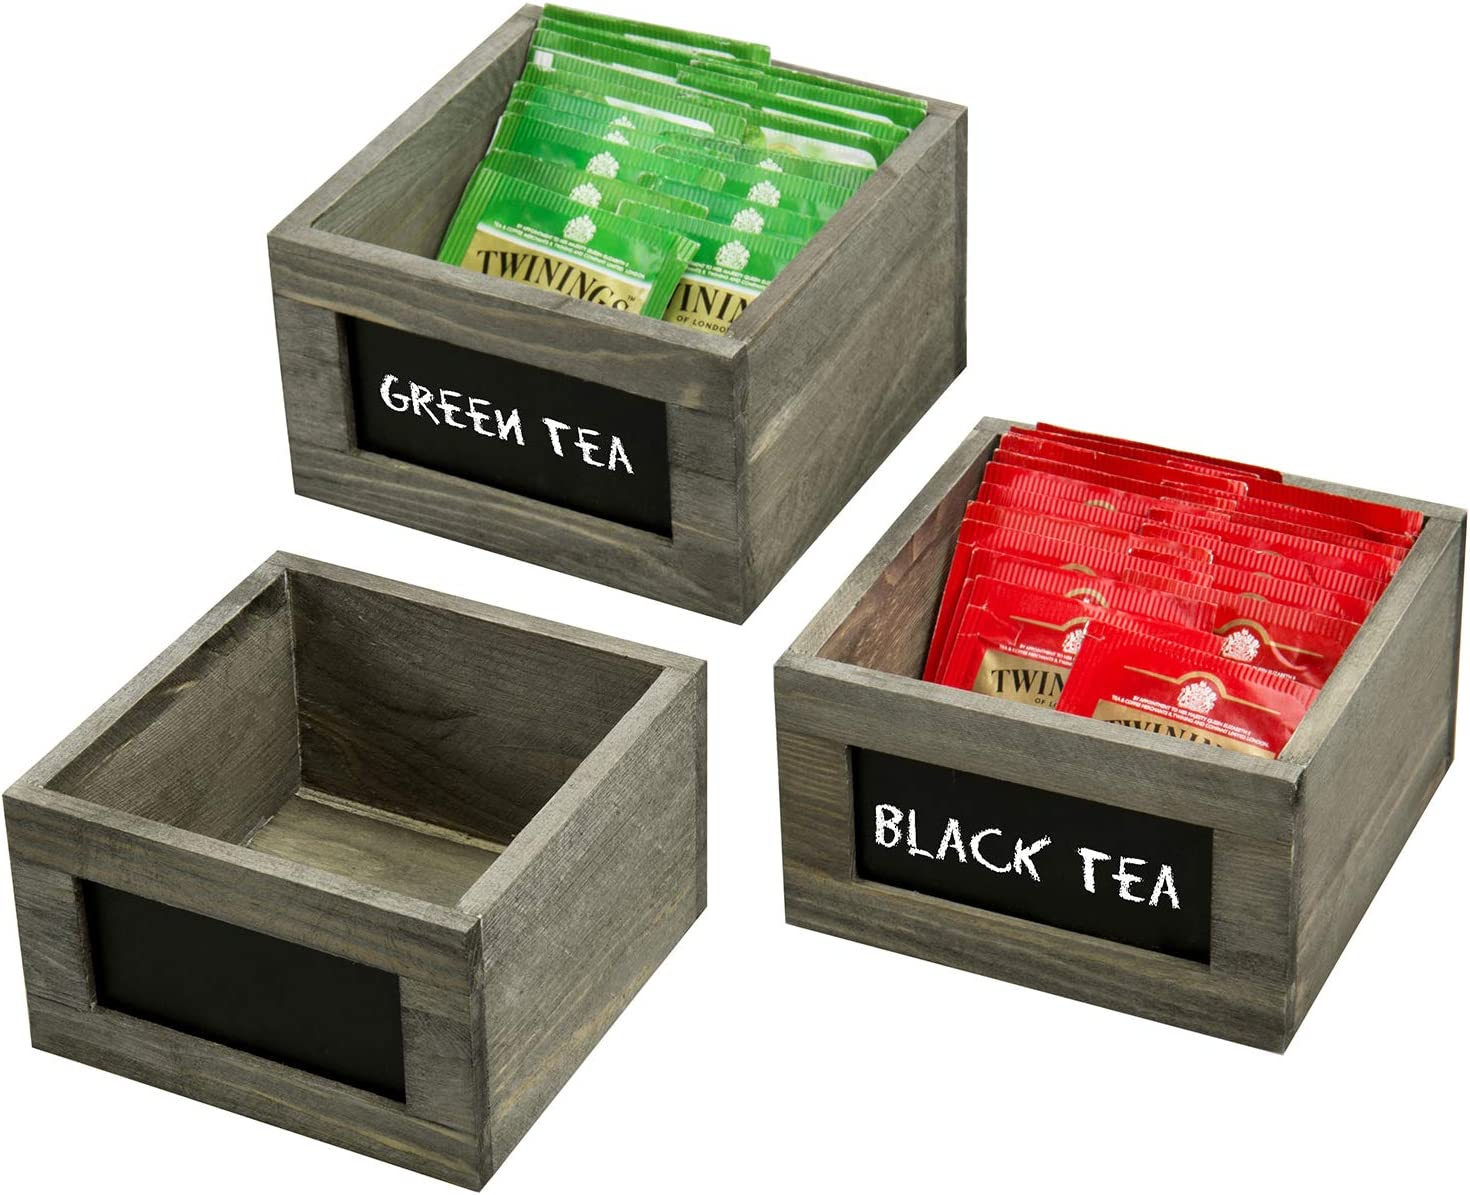 MyGift Vintage Gray Wood Storage Organizer Boxes for Tea Bags, Sugar & Sweeteners with Chalkboard Labels, Set of 3